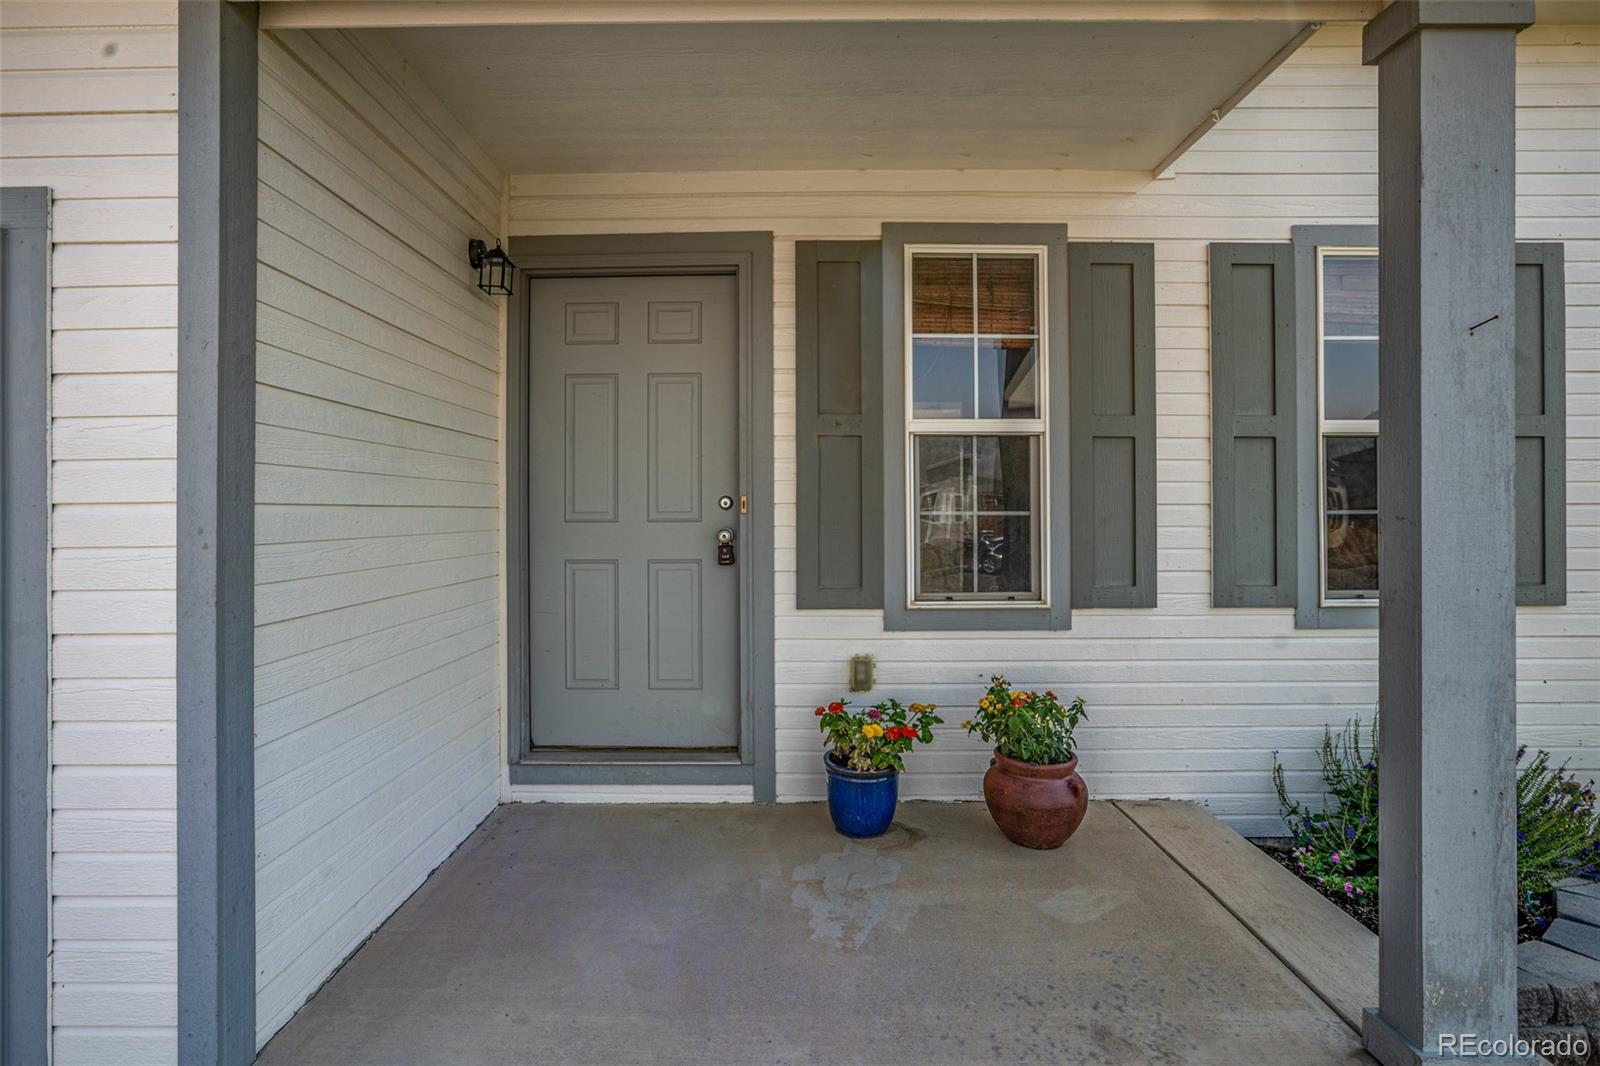 MLS# 6387968 - 8 - 7580 Middle Bay Way, Fountain, CO 80817